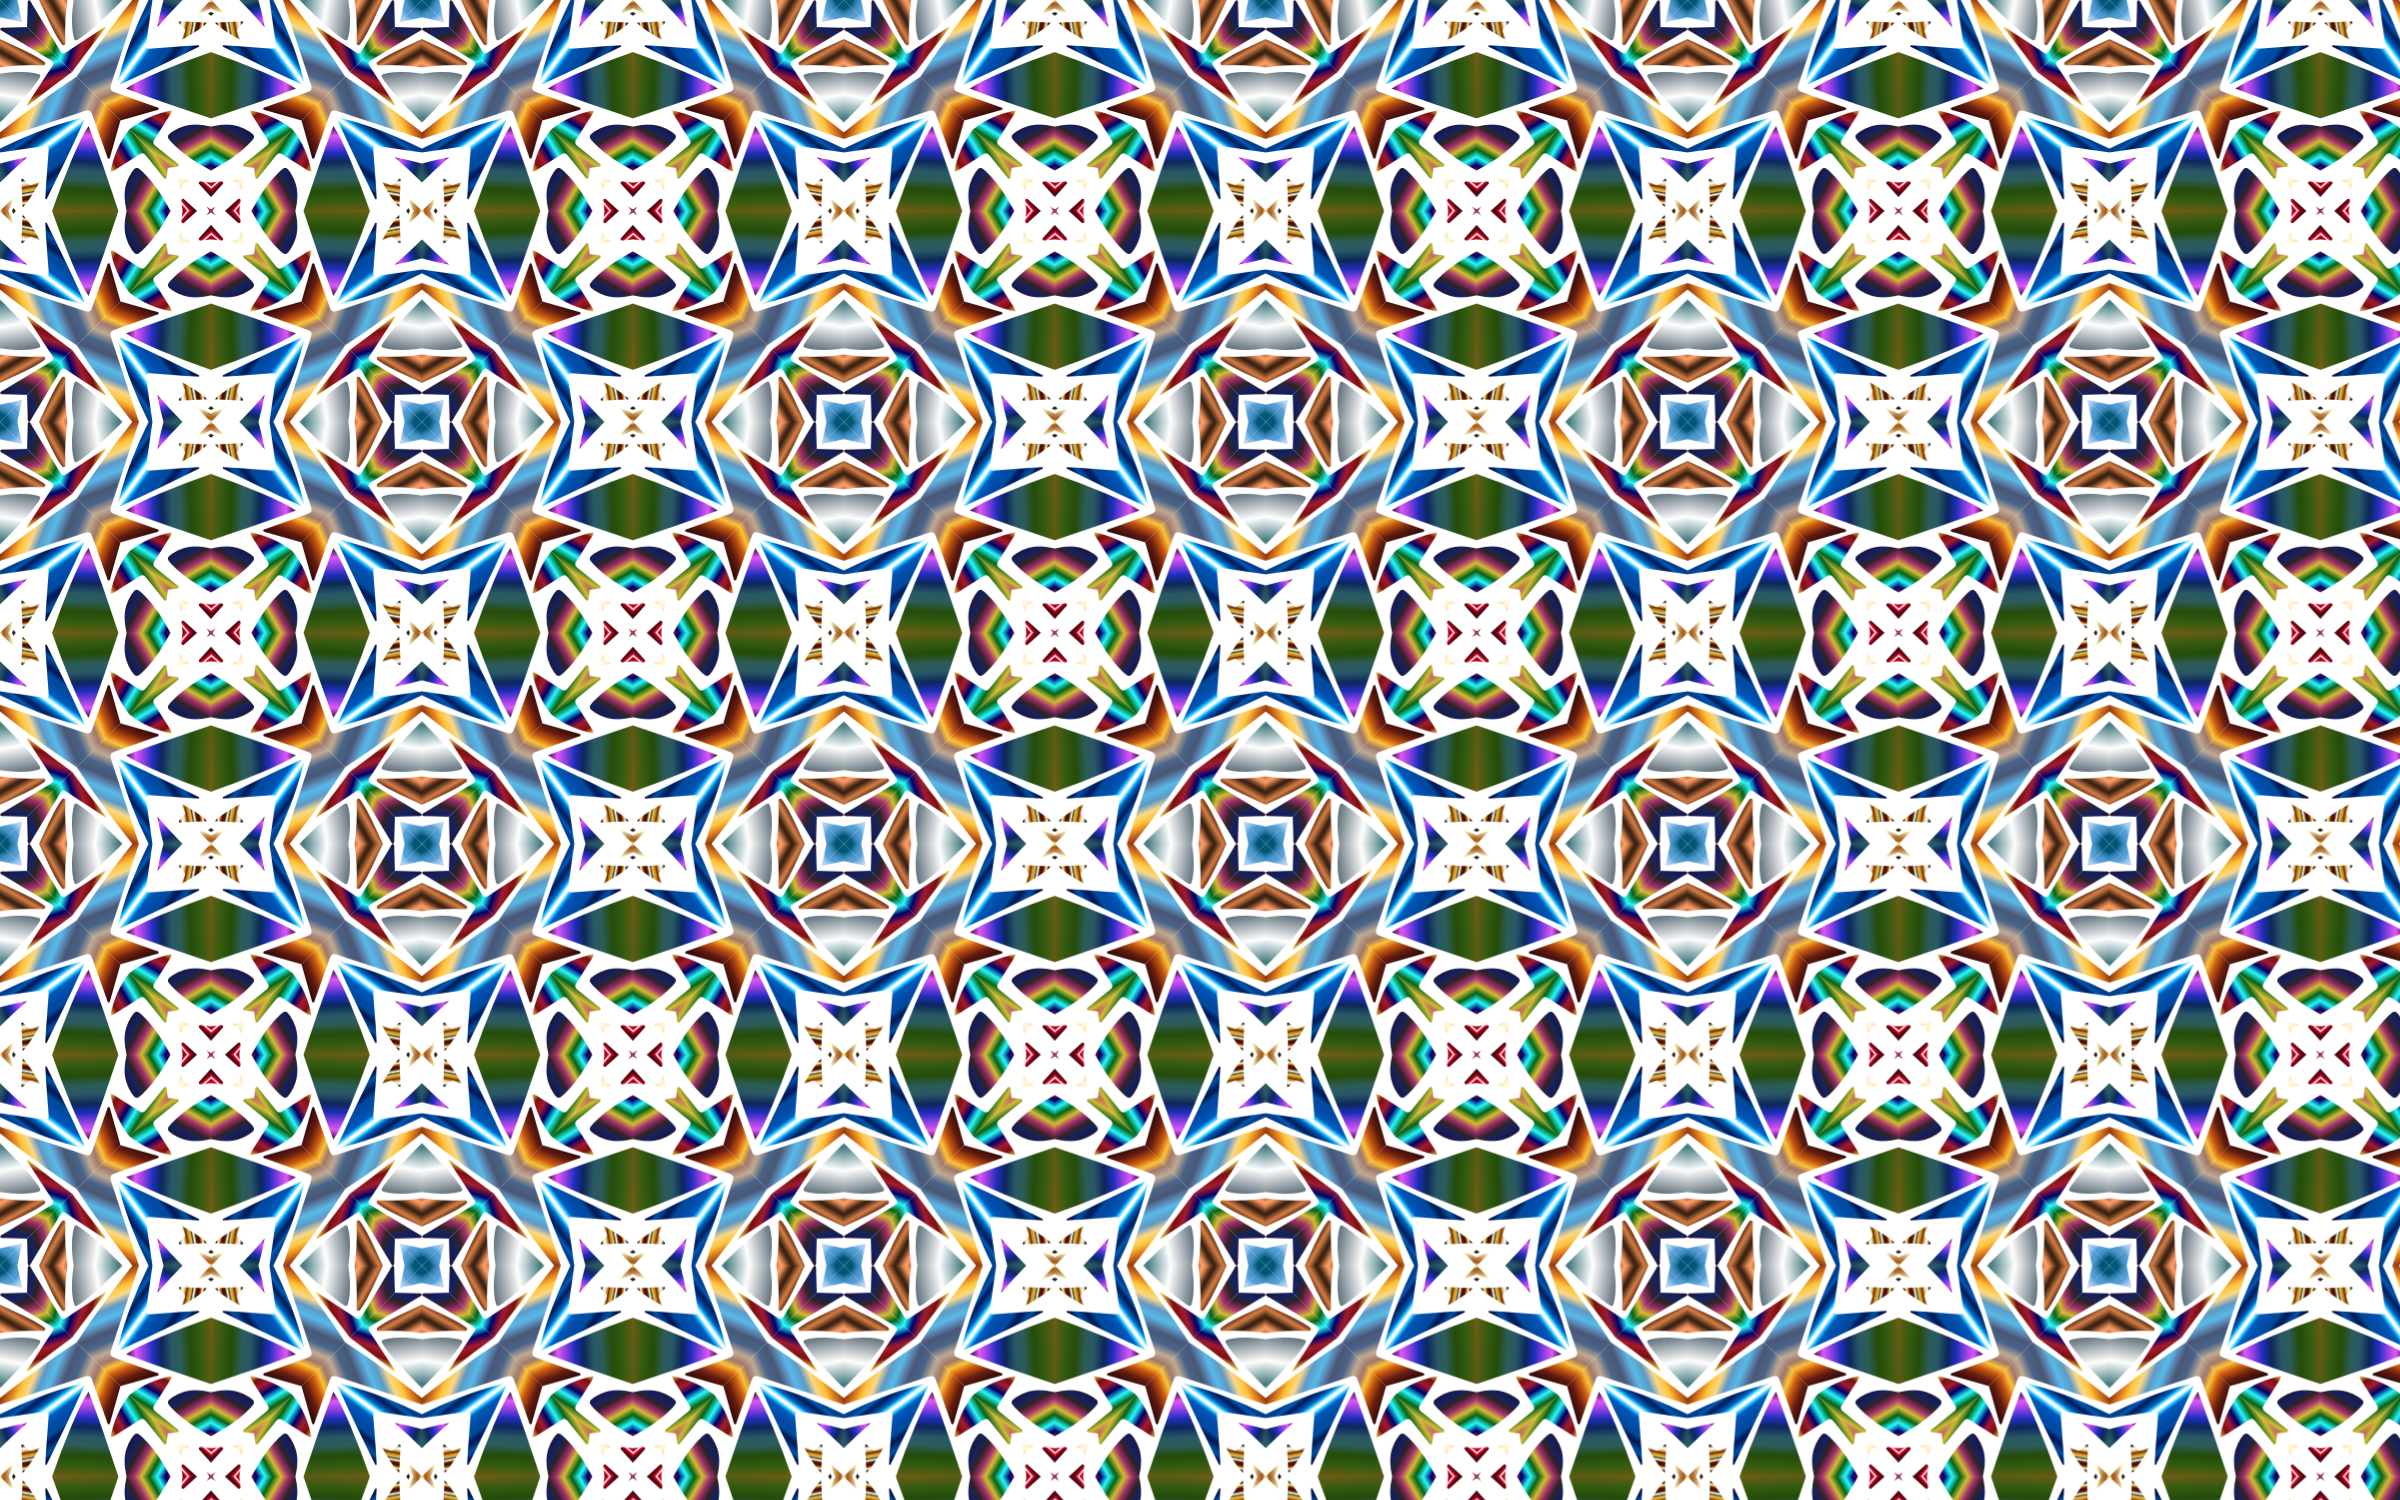 Seamless Pattern 41 by GDJ